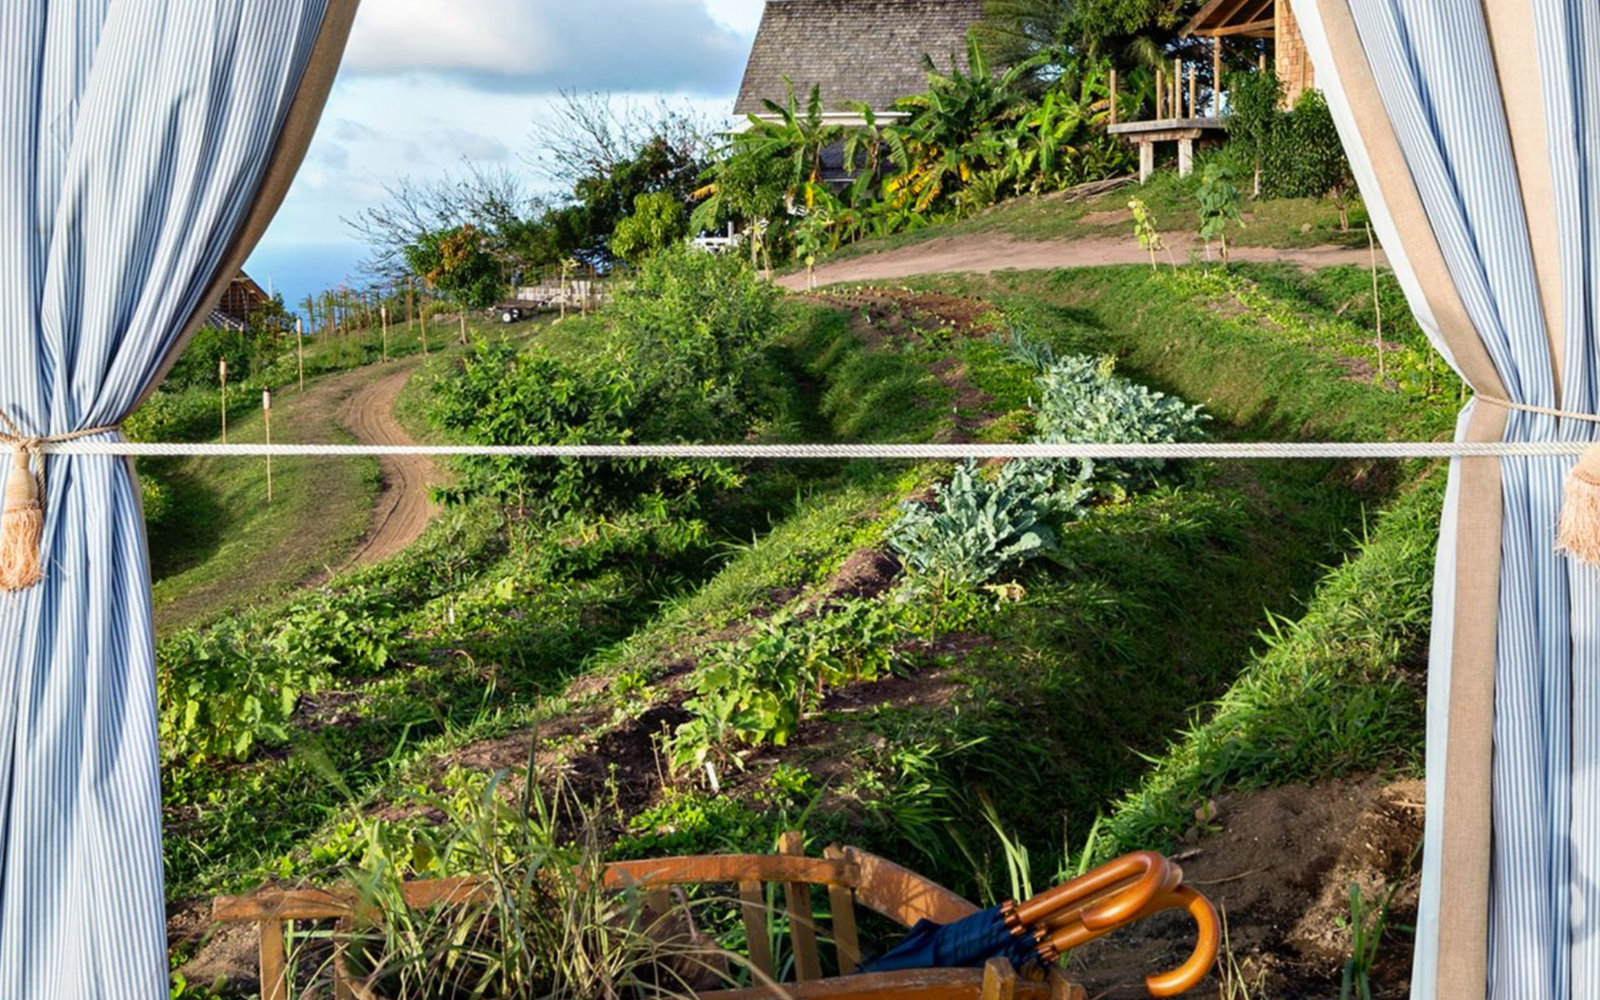 Farm-to-Table Hotels That Let You Eat Off the Land